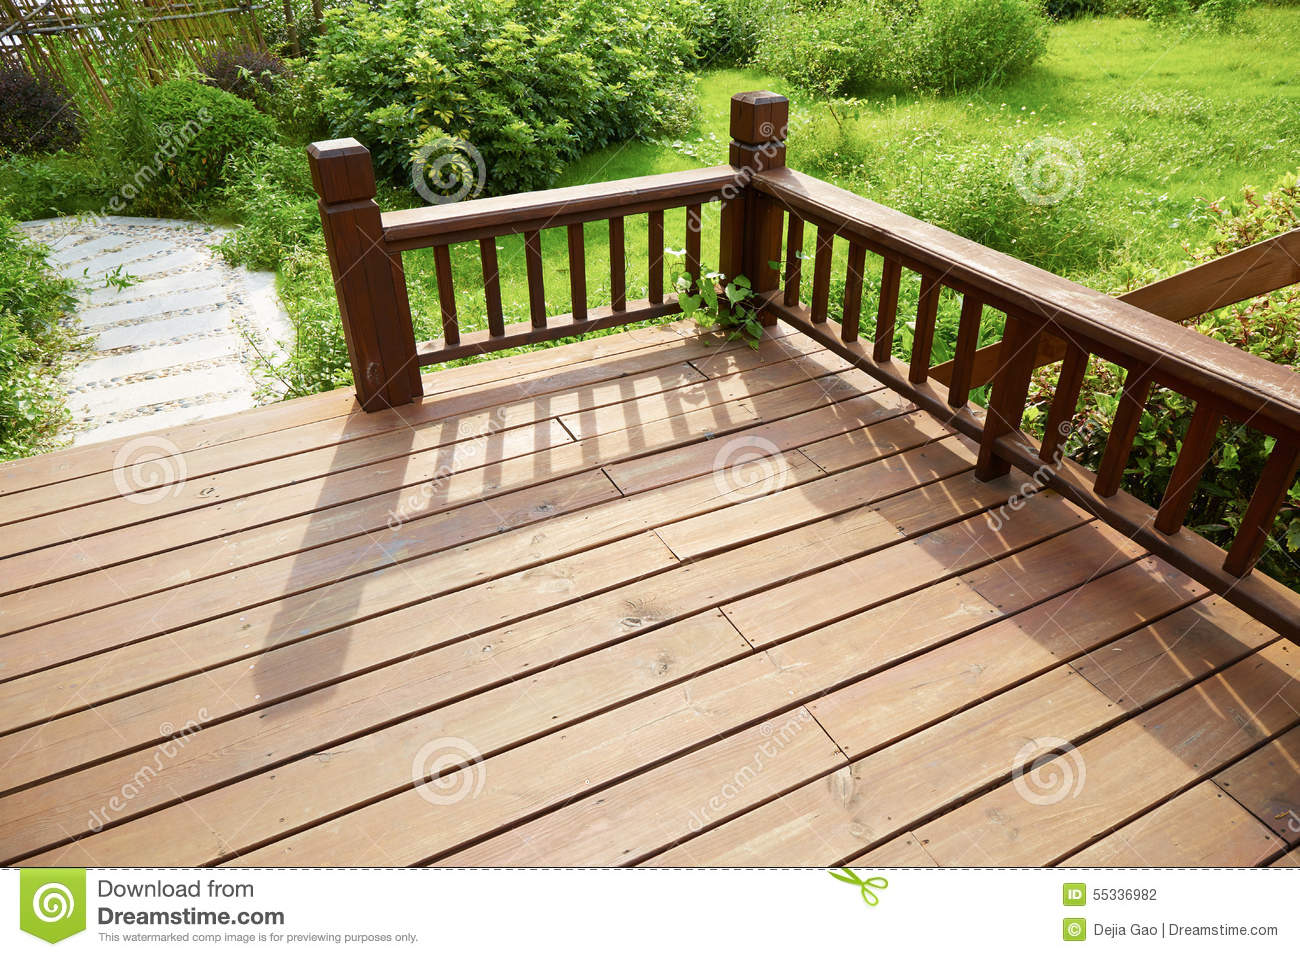 House wooden deck wood outdoor backyard patio in garden for Images of garden decking